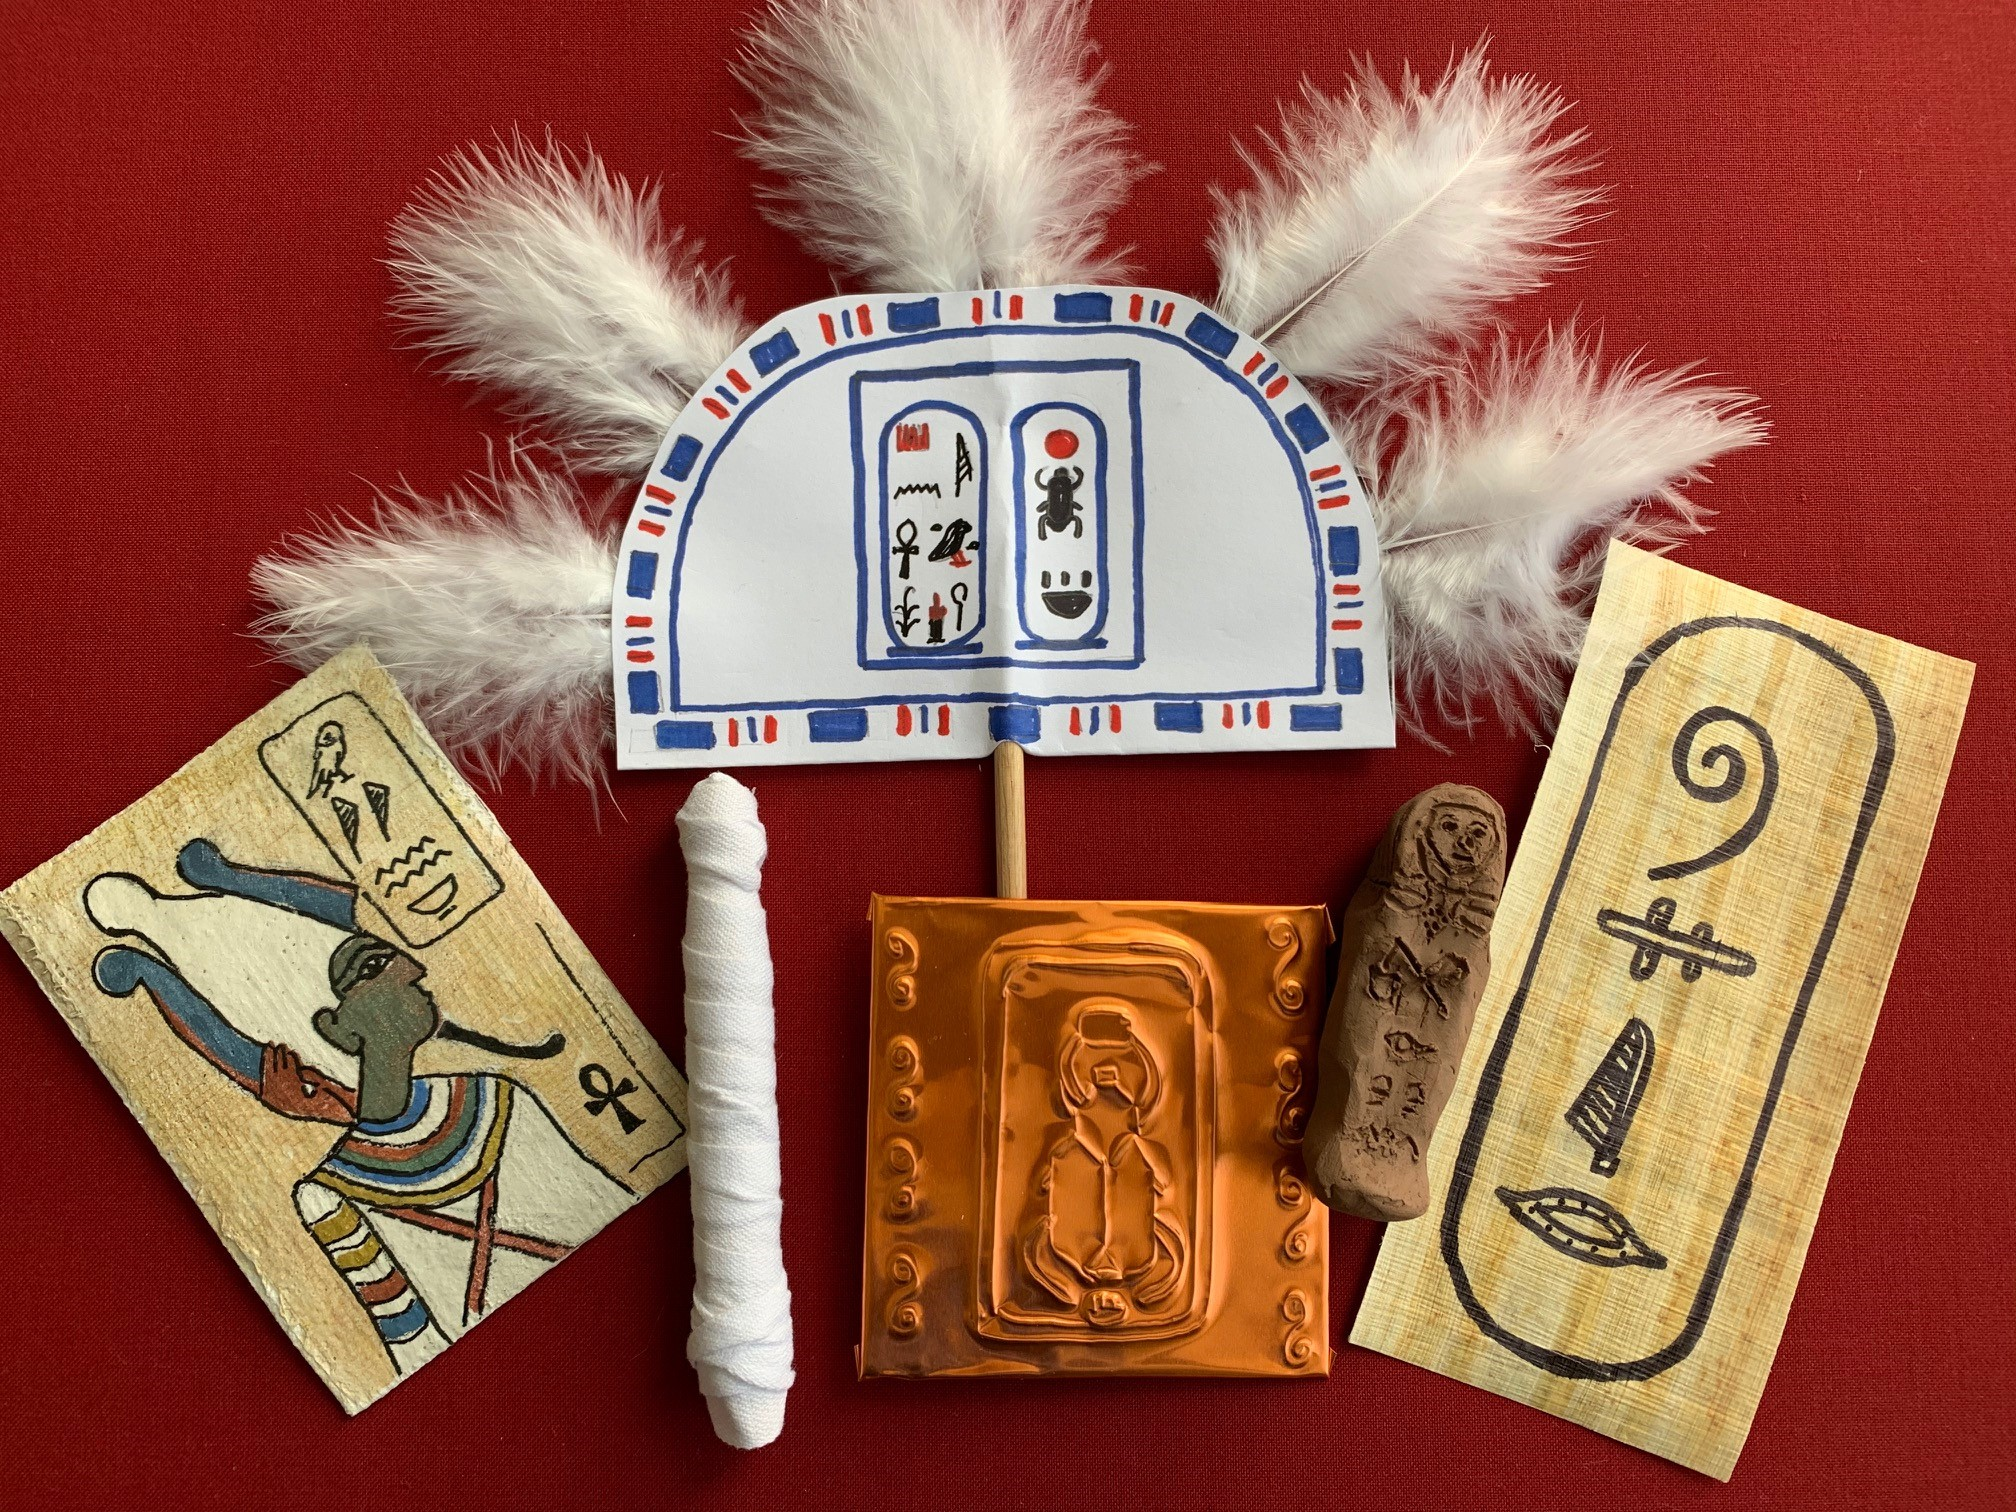 The items include a tomb painting, a mummified doll, an engraved plaque made with golden foil, a feather fan, a clay shabti doll and a papyrus cartouche.